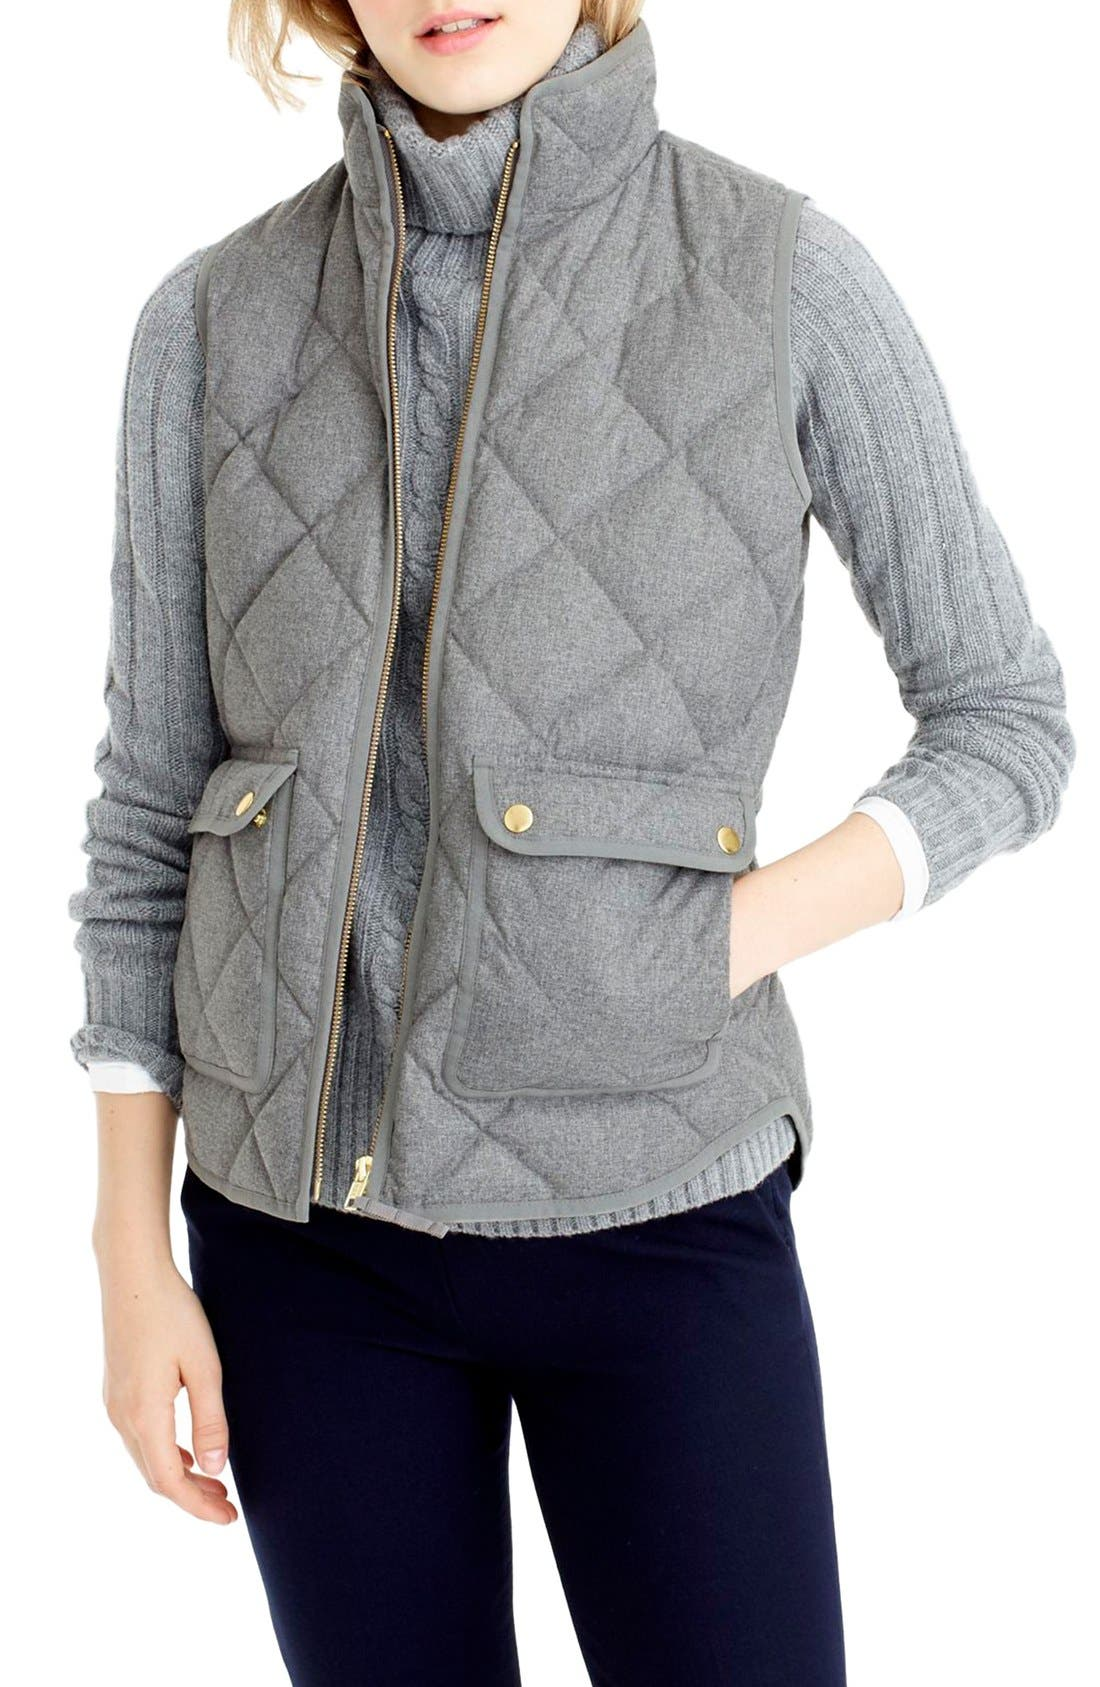 Alternate Image 1 Selected - J.Crew Excursion Quilted Flannel Vest (Regular & Petite)